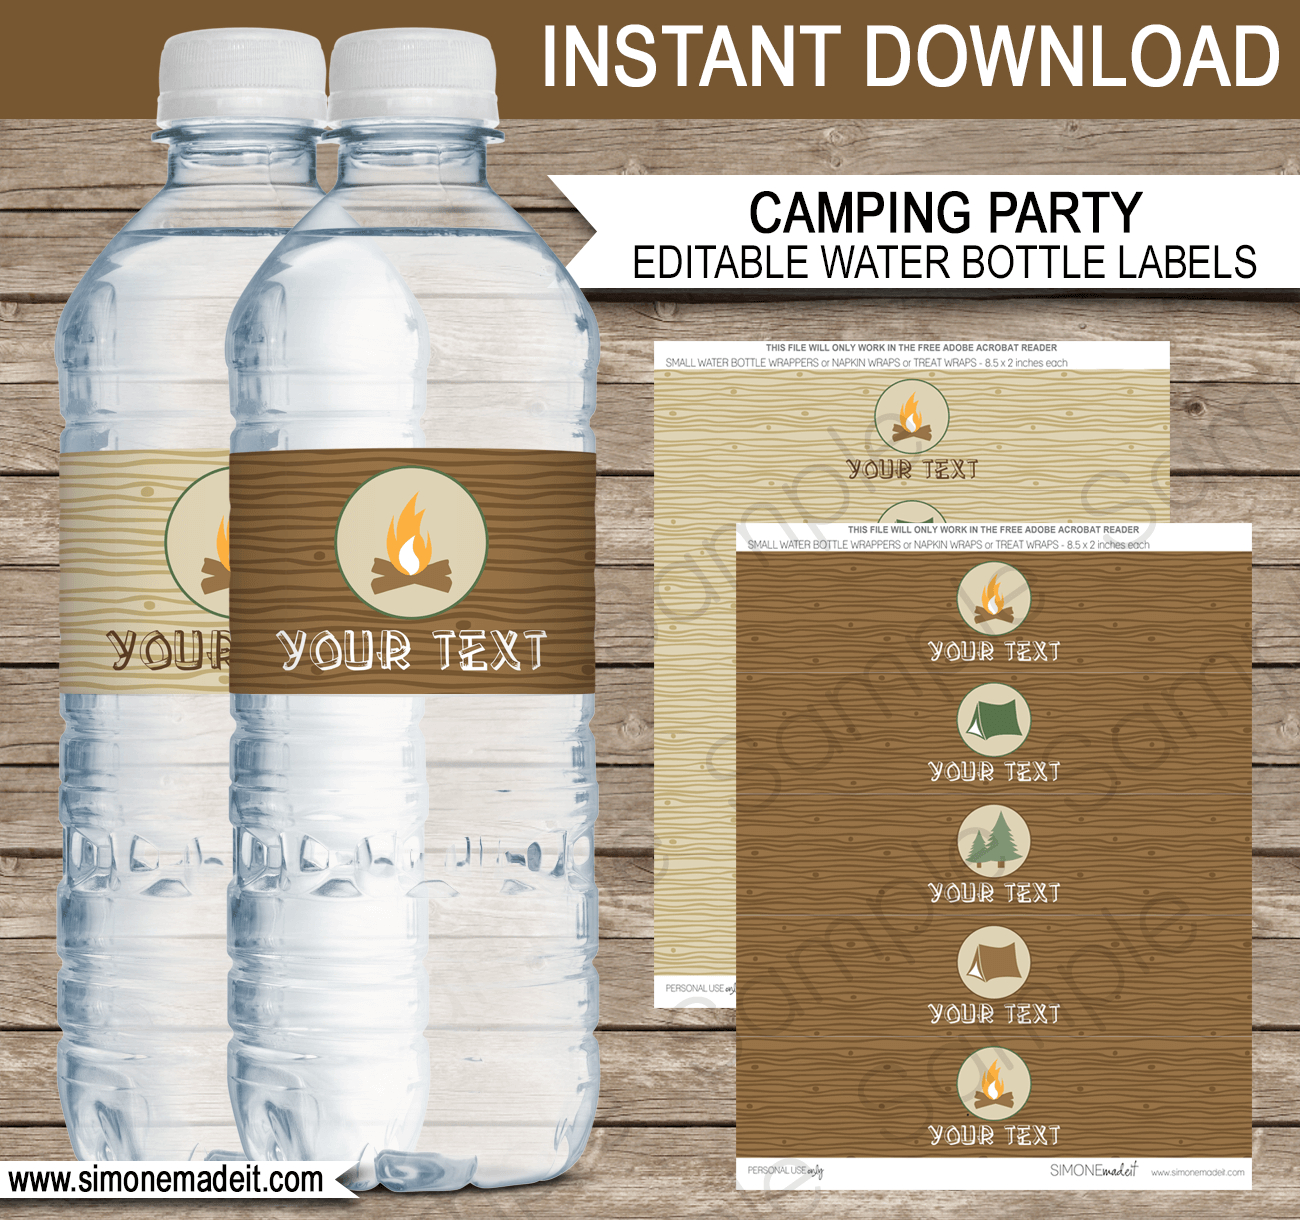 Camping Party Water Bottle Labels  Editable Template With Template For Bottle Labels